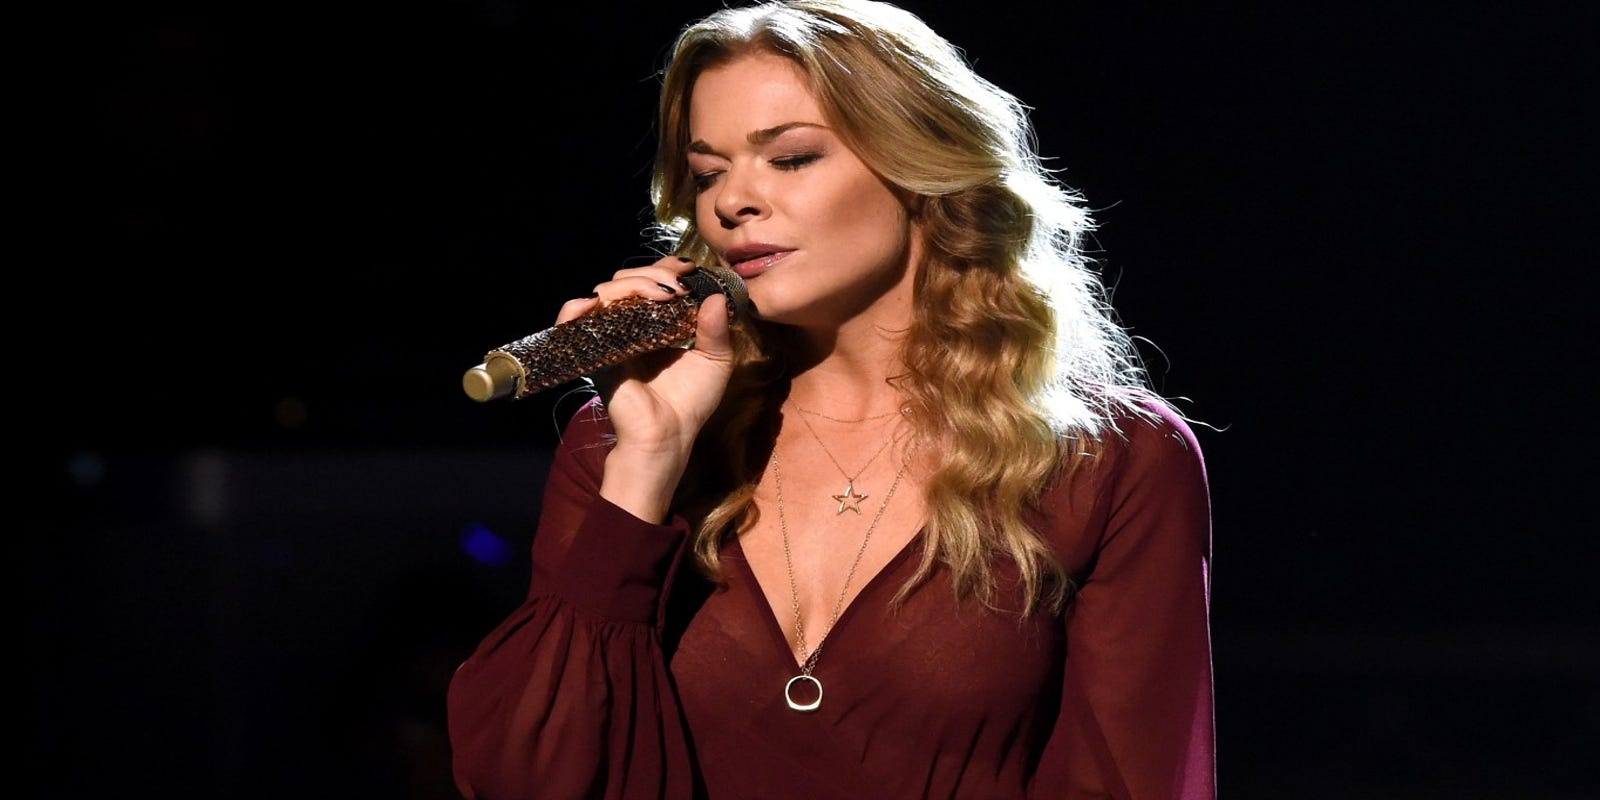 LeAnn Rimes is 'tired of hiding' her psoriasis, shows off skin in powerful photos